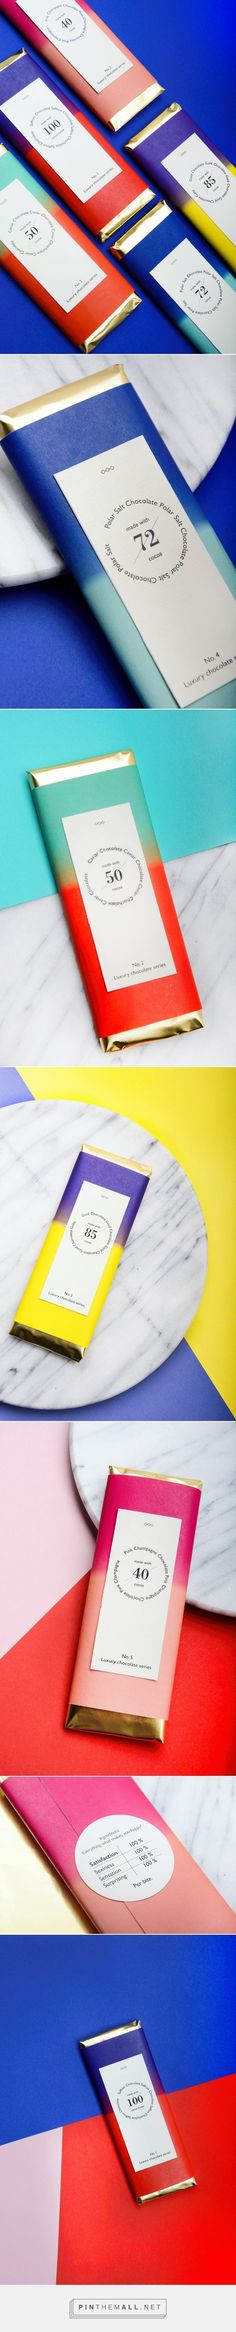 Luxury Chocolate Series by Maria Le Quang / concept /